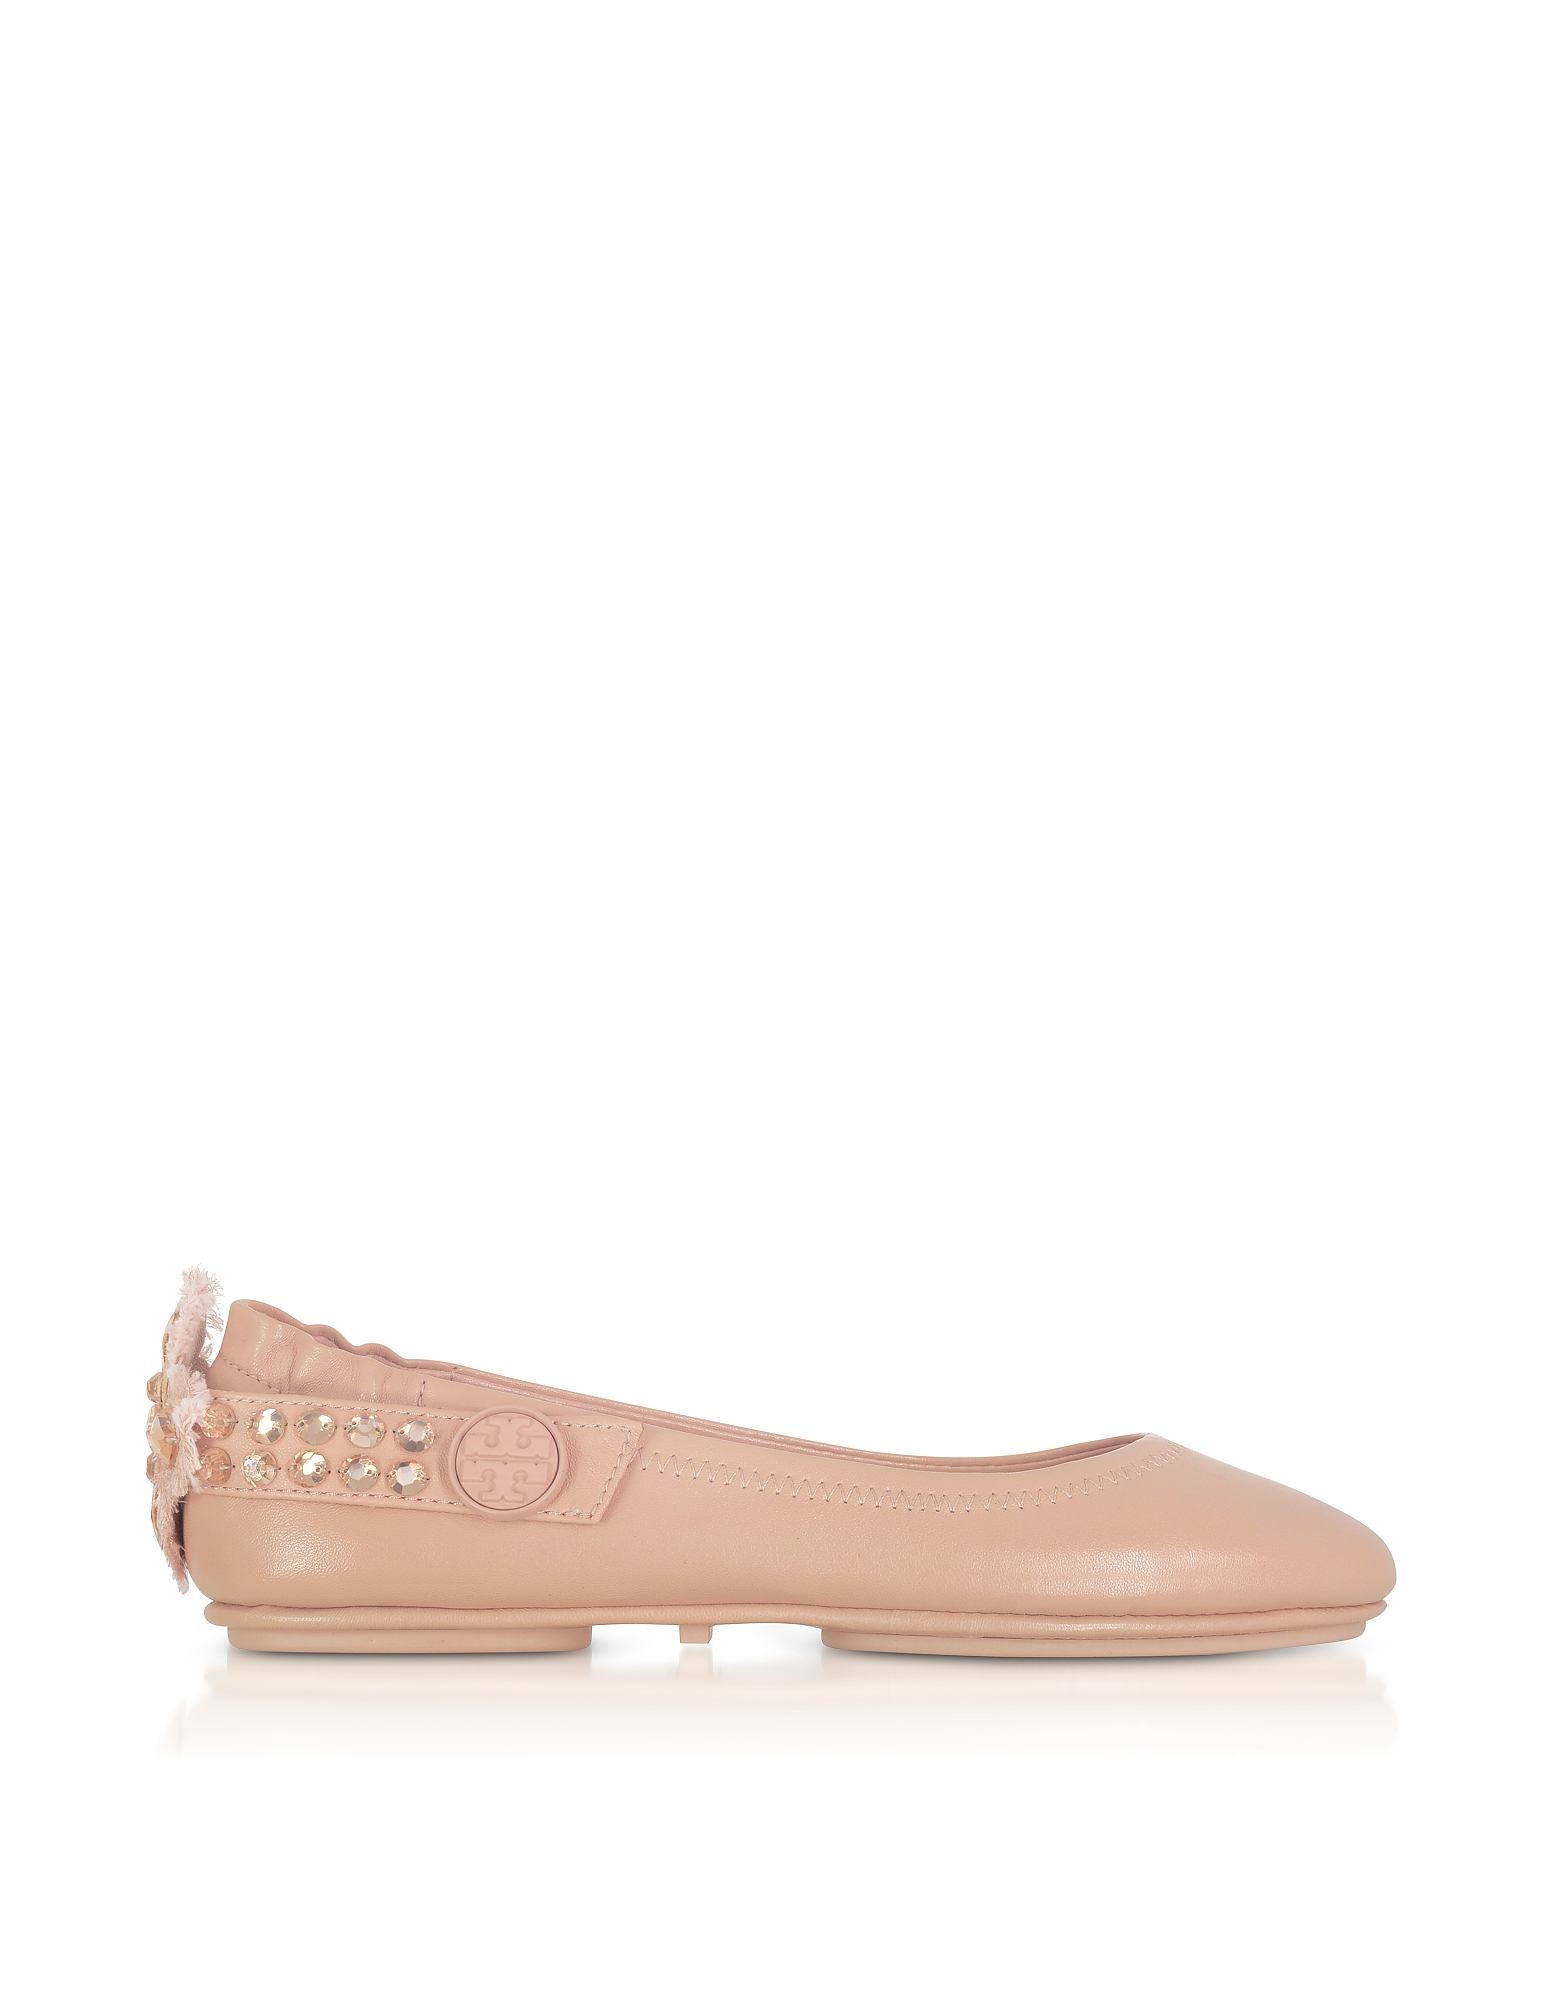 Tory Burch Shoes, Minnie Two Way Warm Blush Nappa Leather Ballet Flats